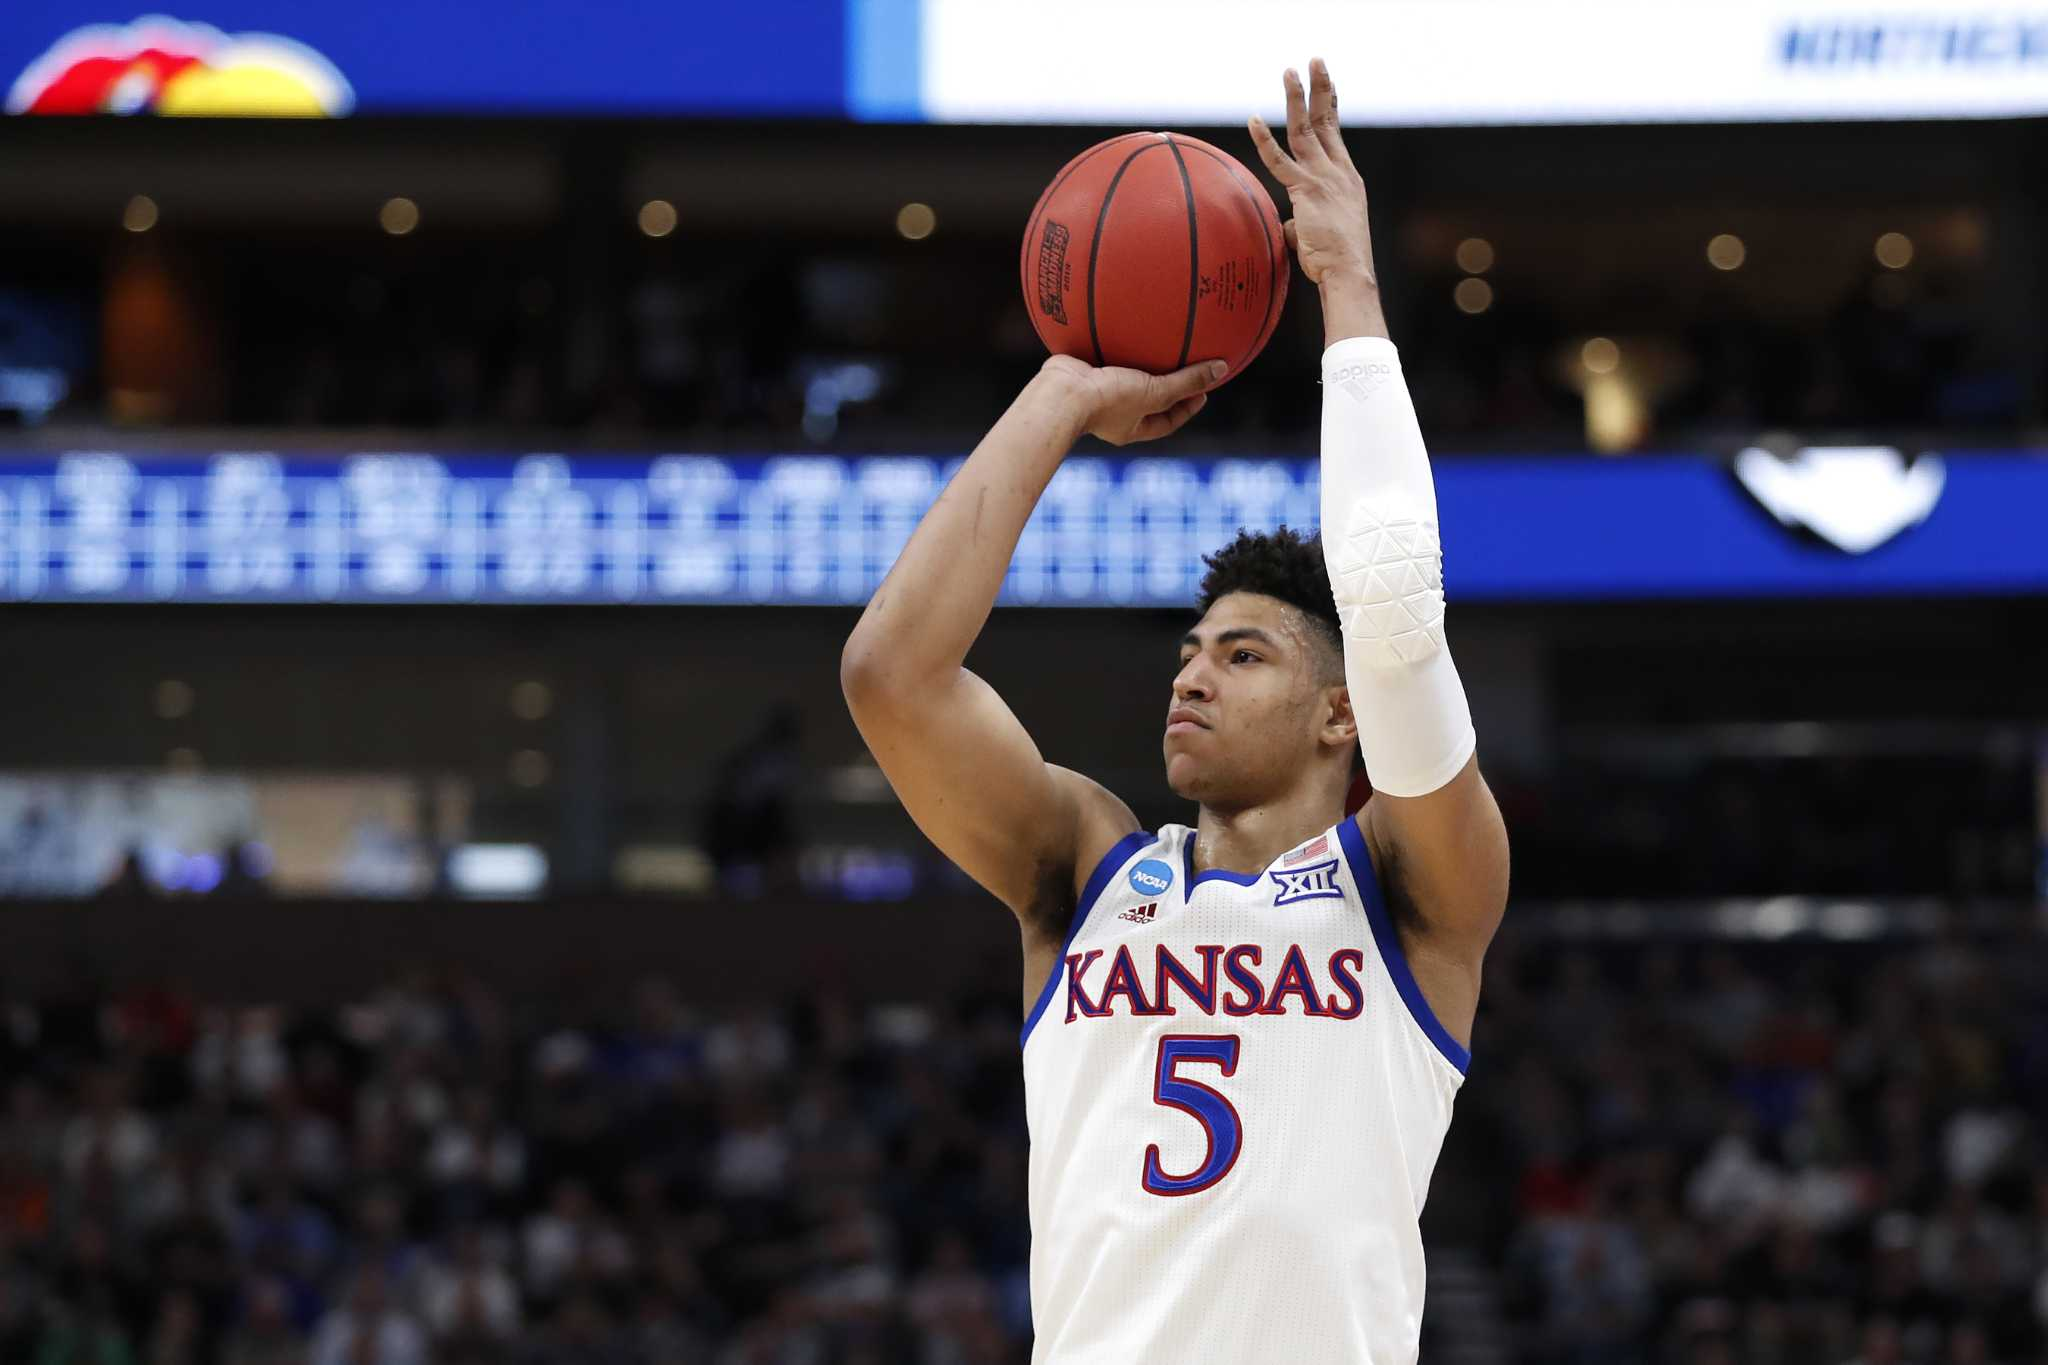 UH transfer Quentin Grimes cleared to play this season